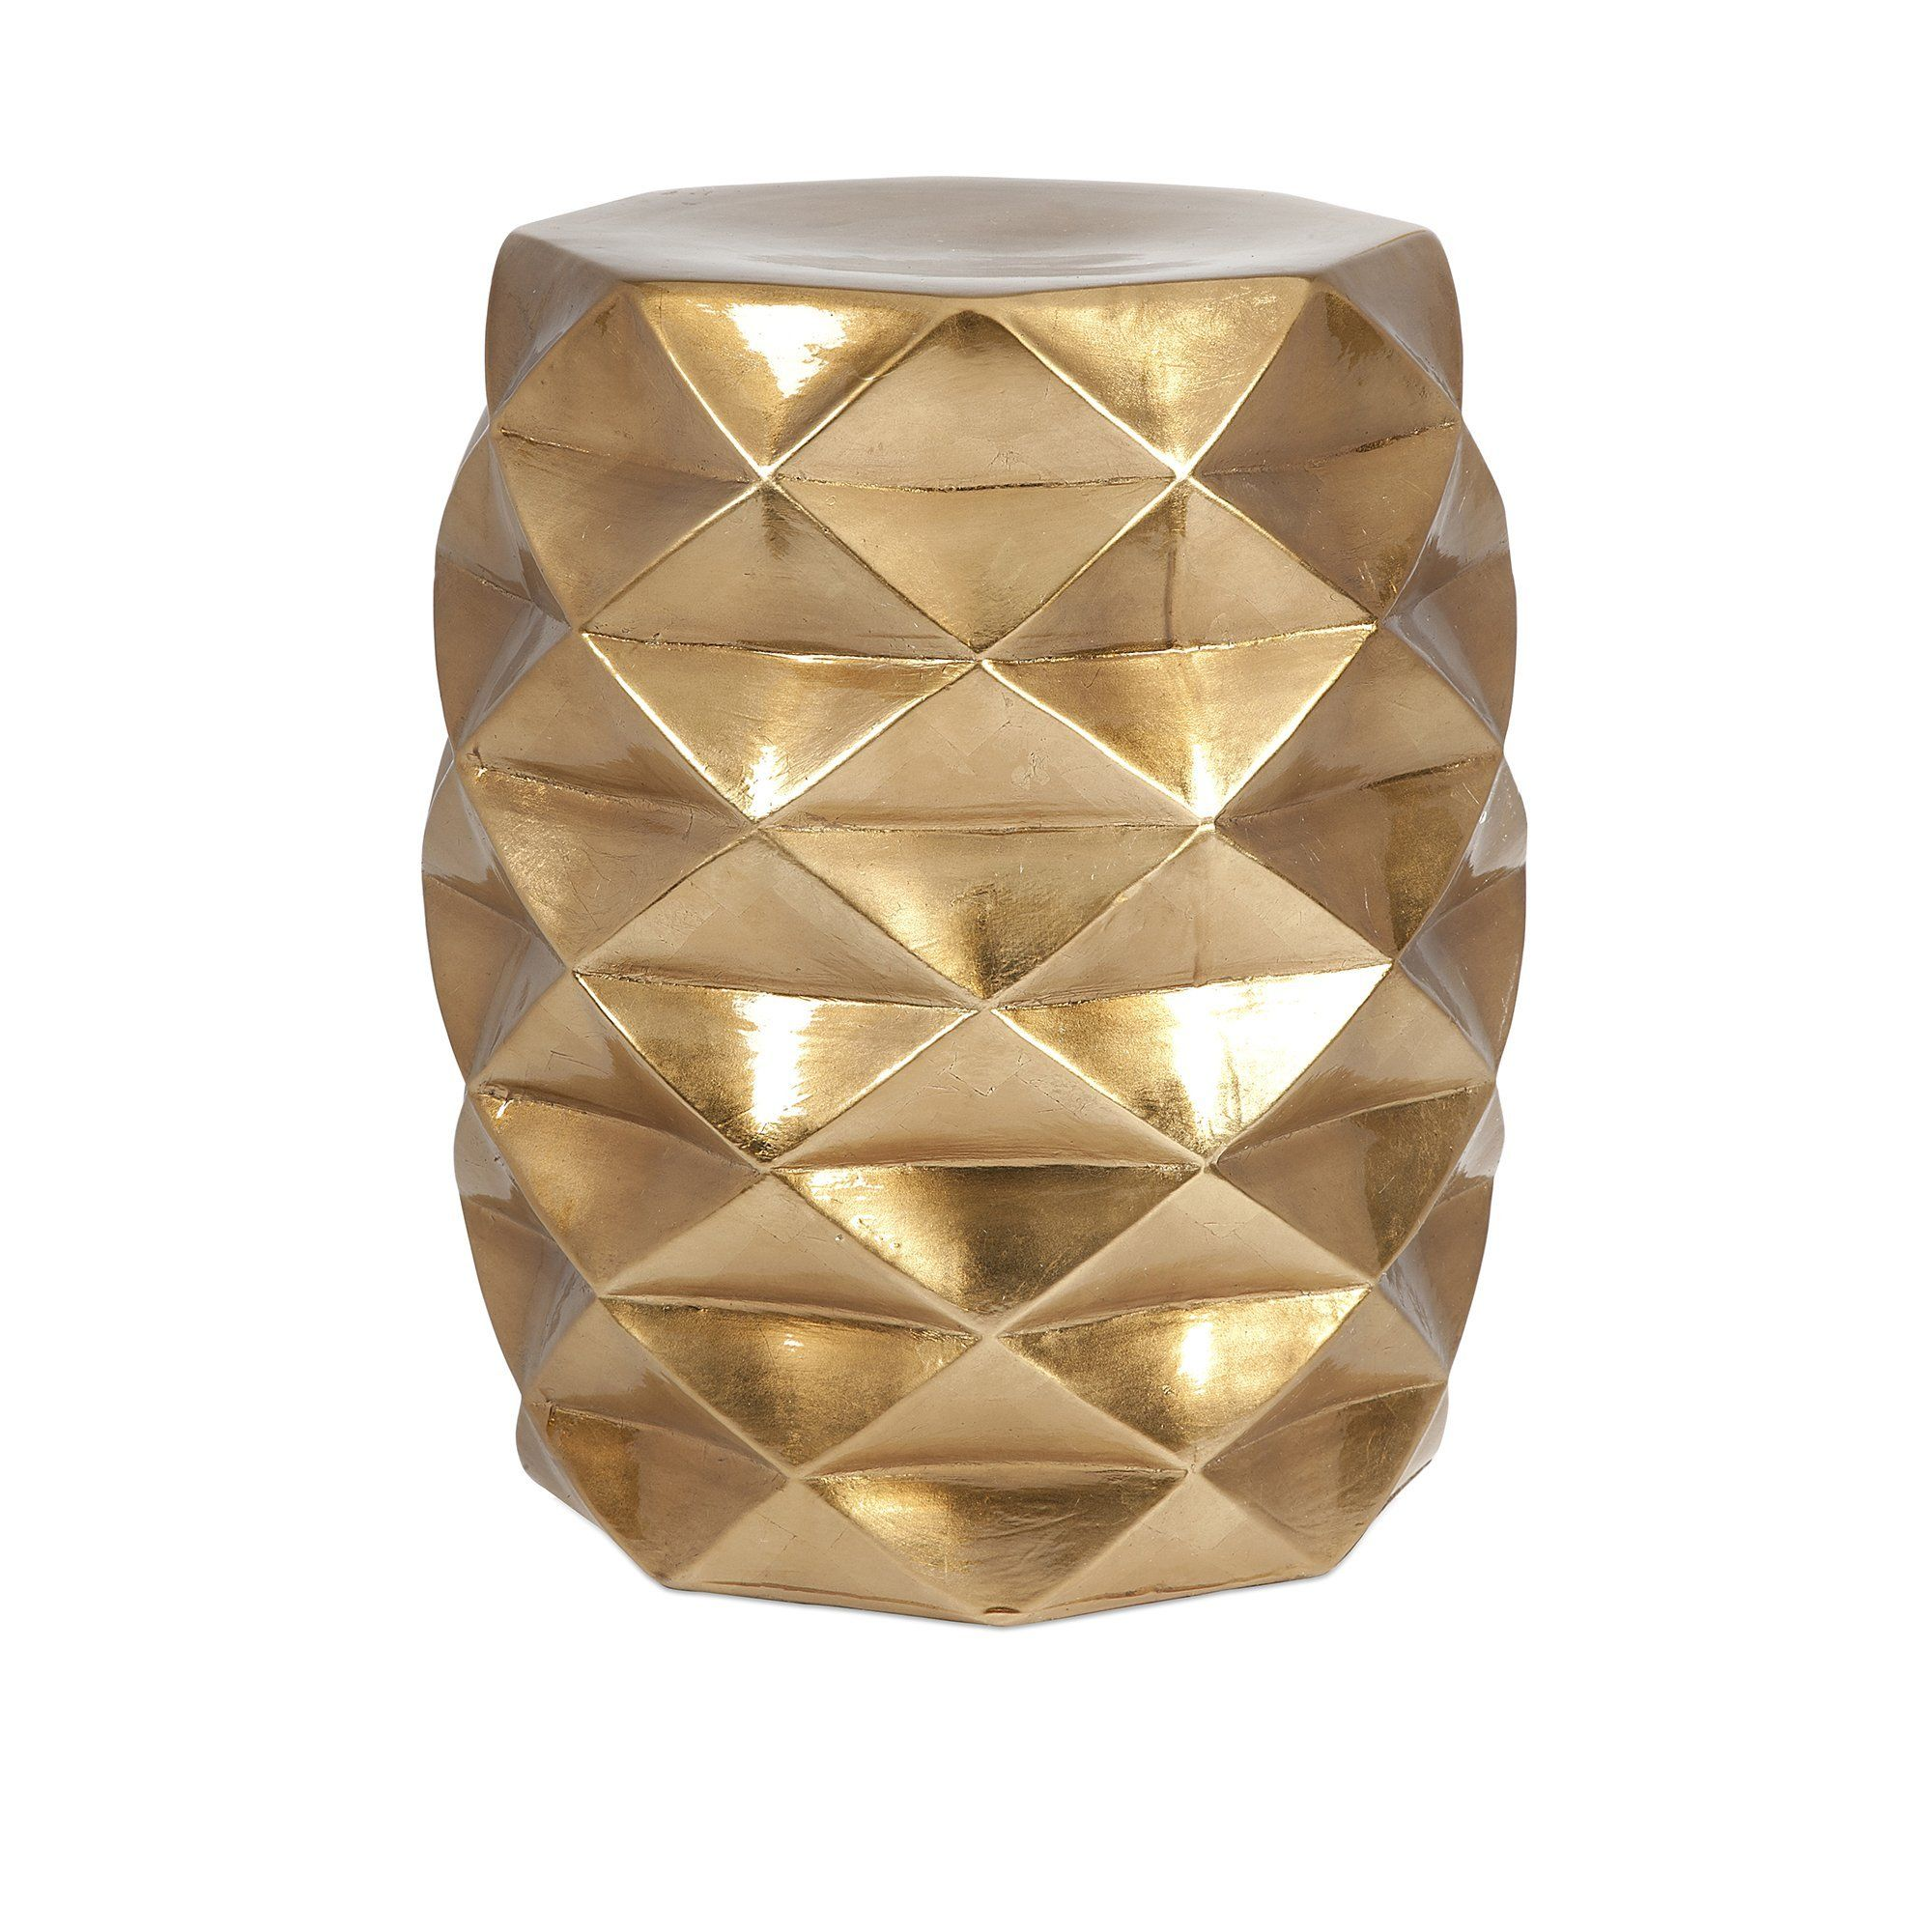 IK Geometric Garden Stool   Stools and Products